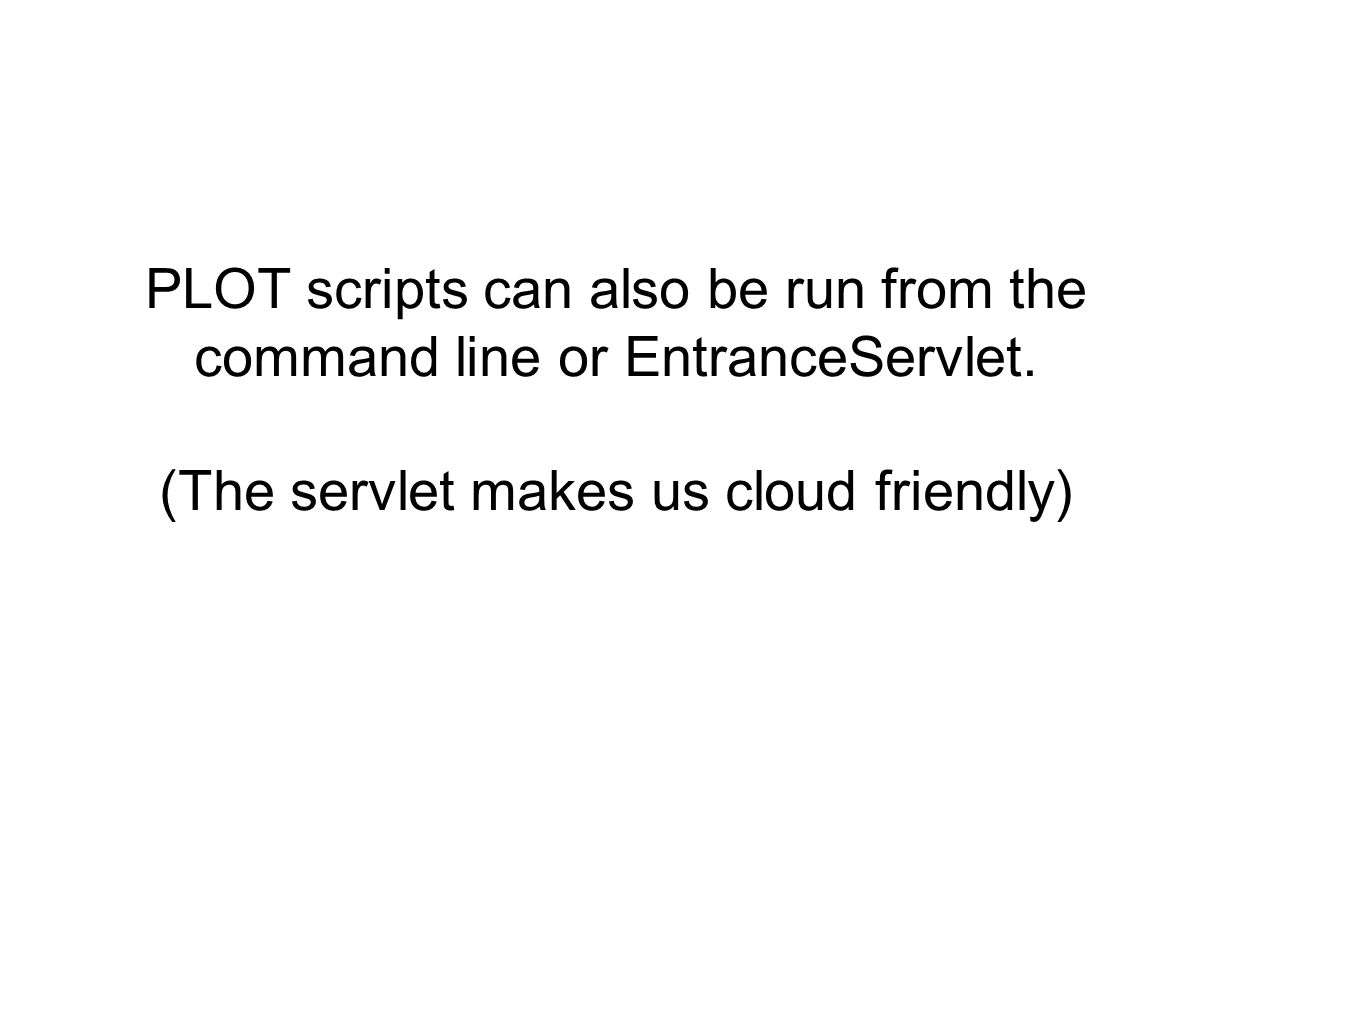 PLOT scripts can also be run from the command line or EntranceServlet.